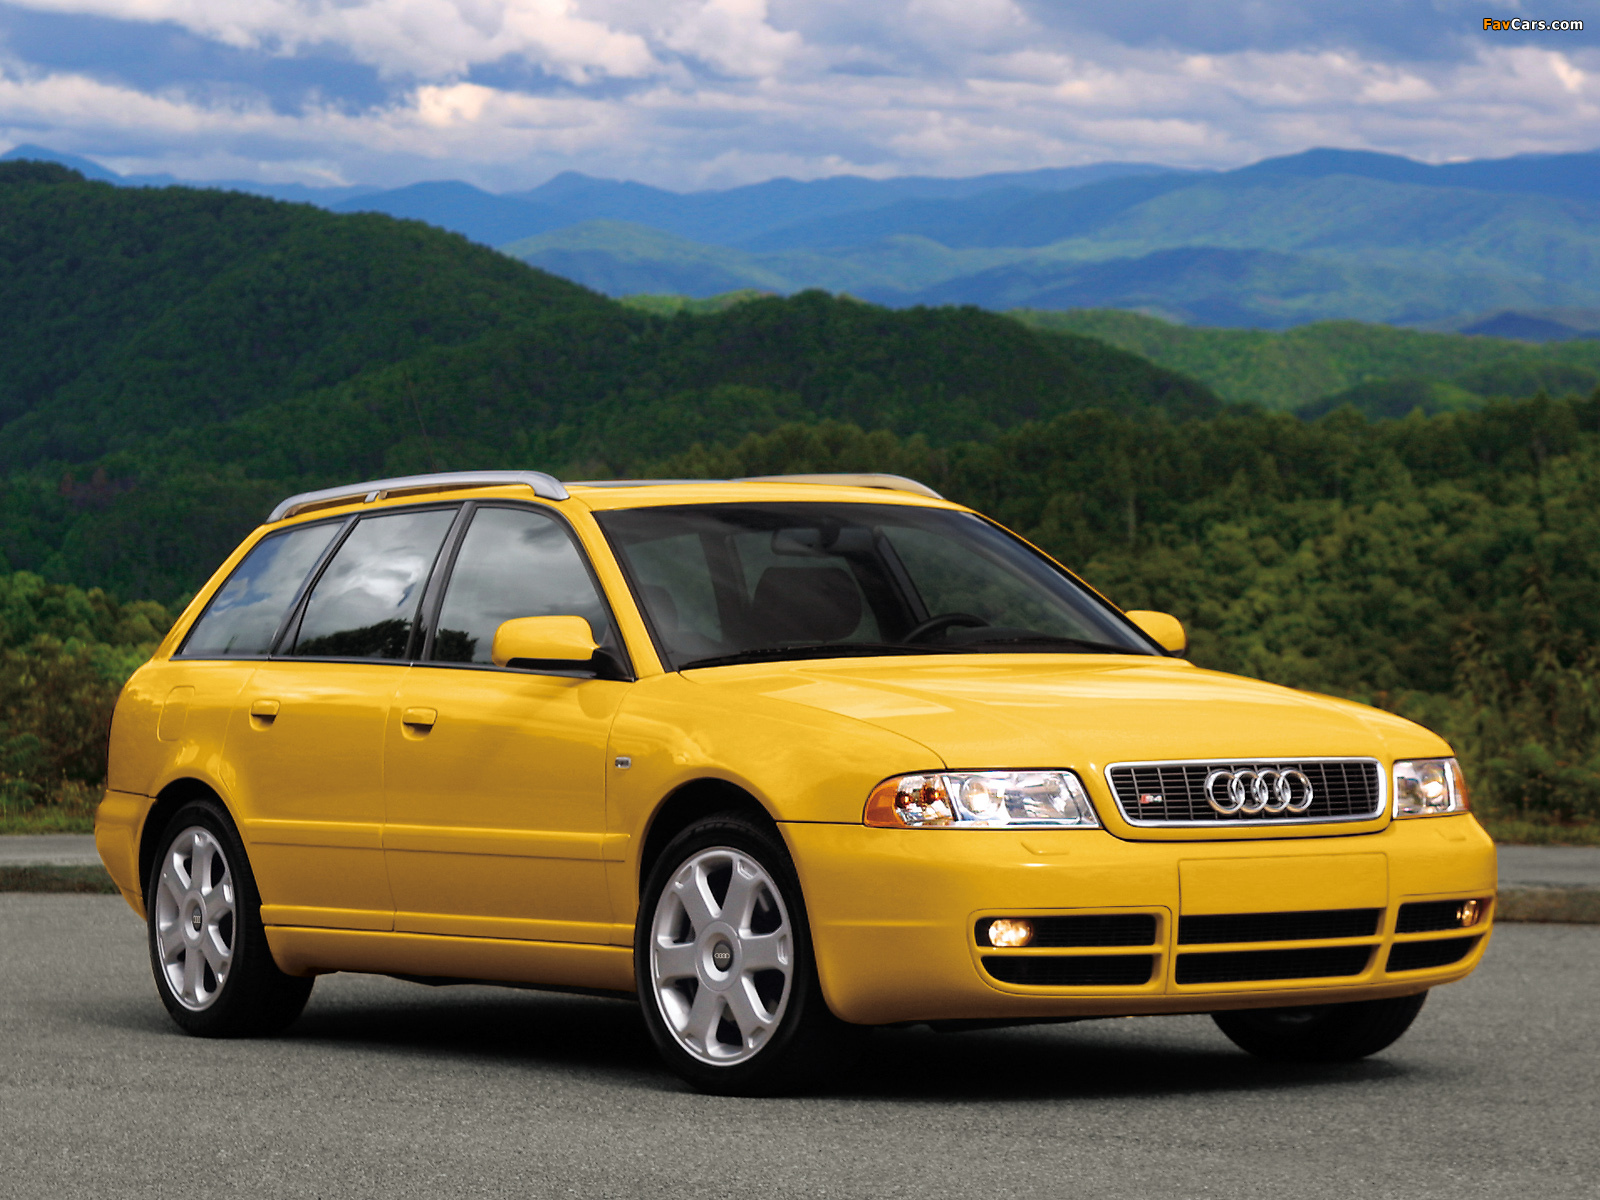 2000 Audi S4 Avant  8d B5   U2013 Pictures  Information And